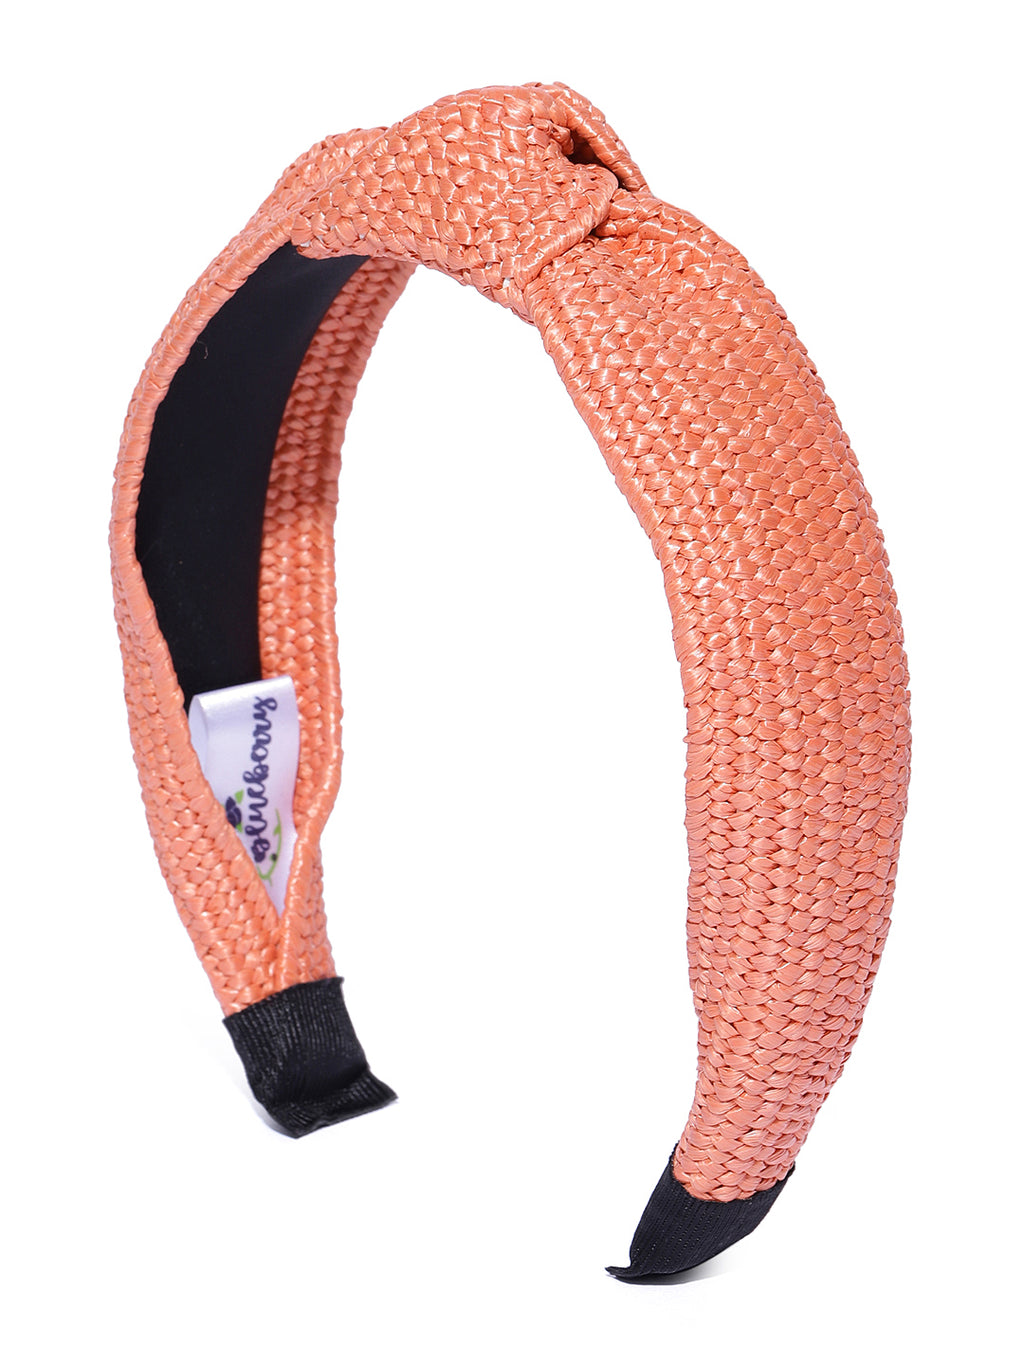 Blueberry Coral jute knot hair band